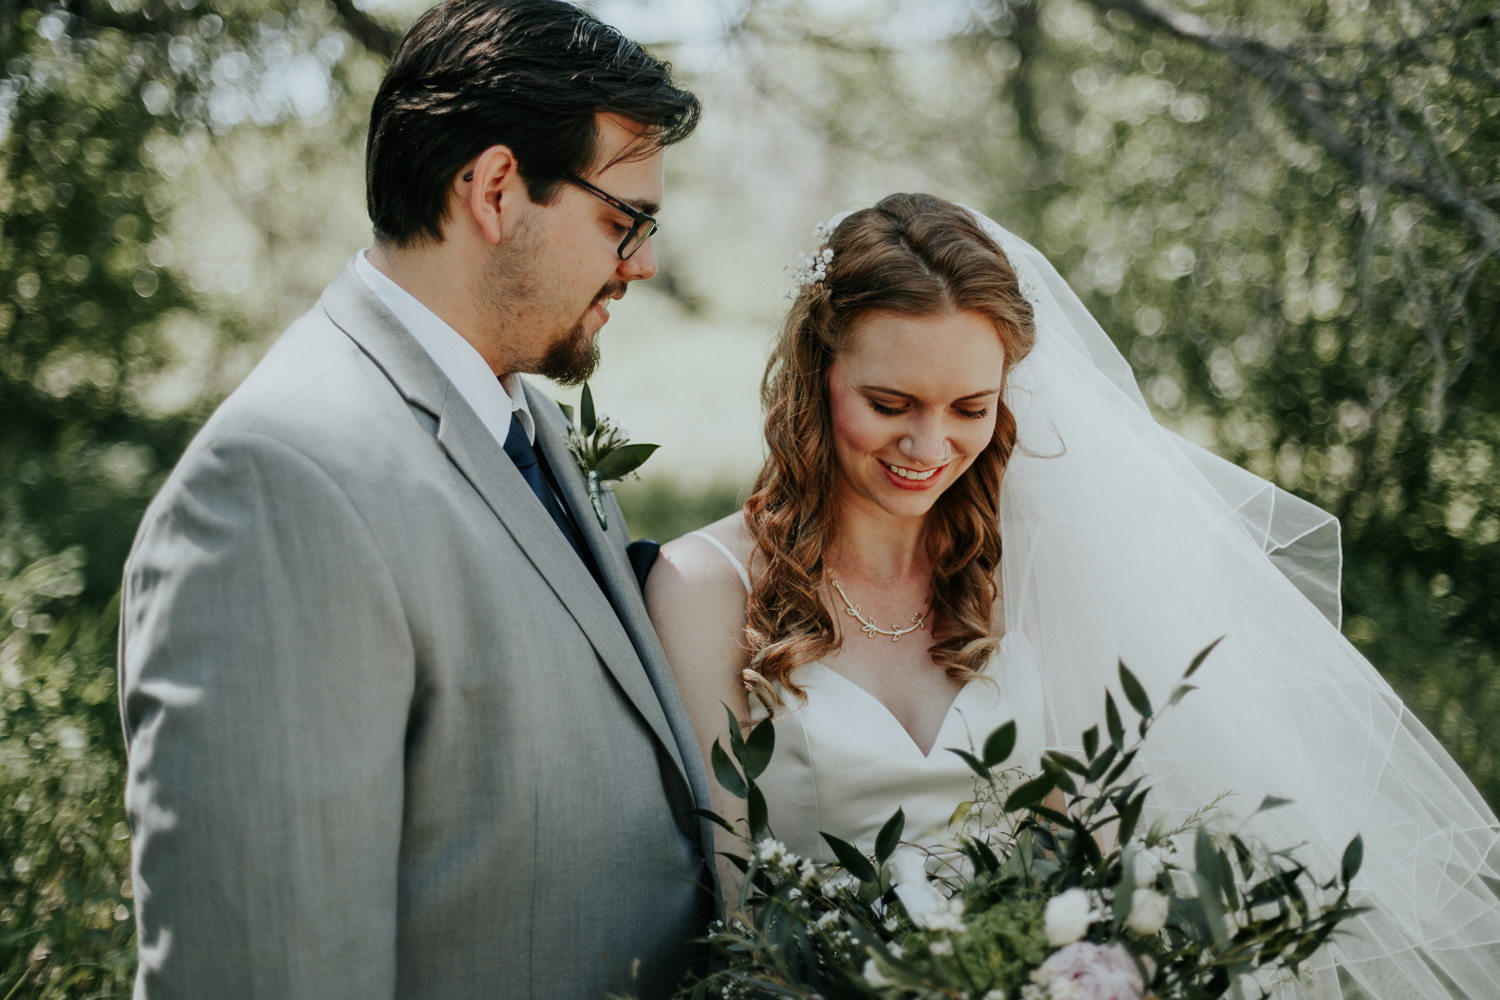 lethbridge-wedding-photographer-love-and-be-loved-photography-dan-tynnea-picture-image-photo-42.jpg